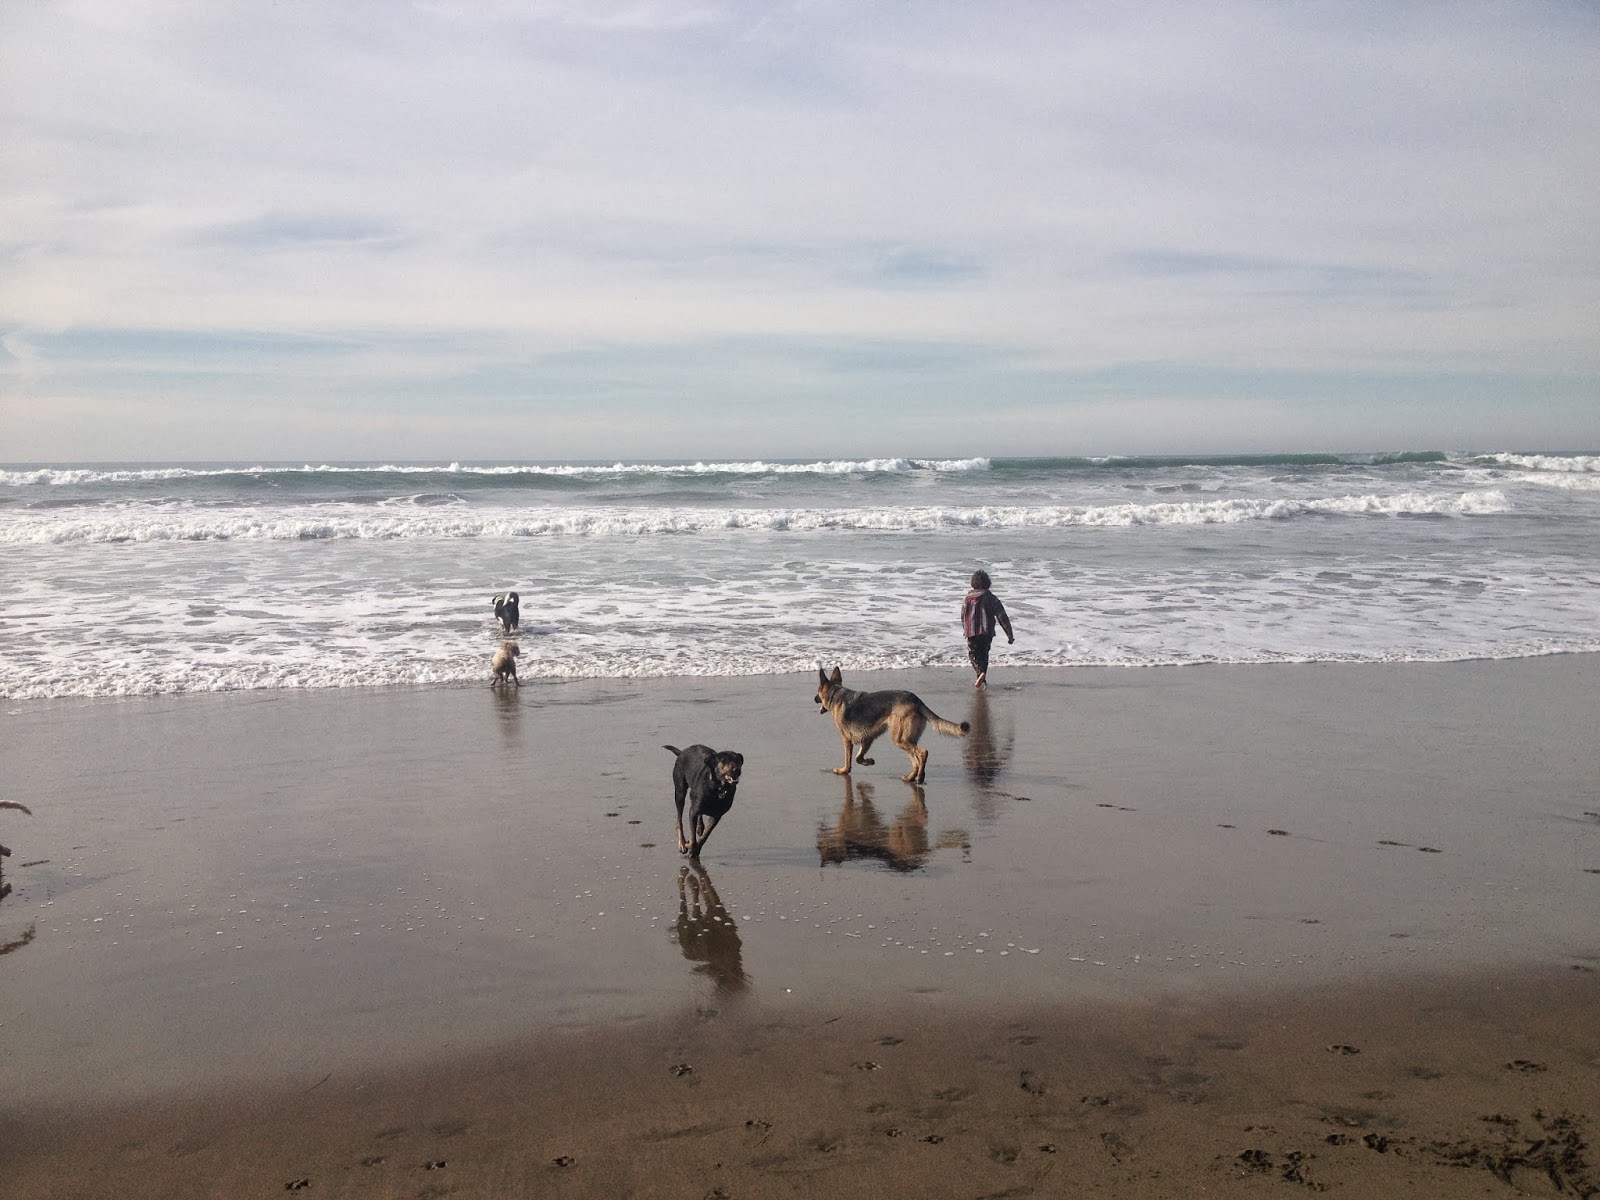 dogs playing in the waves at Fort Funston, San Francisco, CA